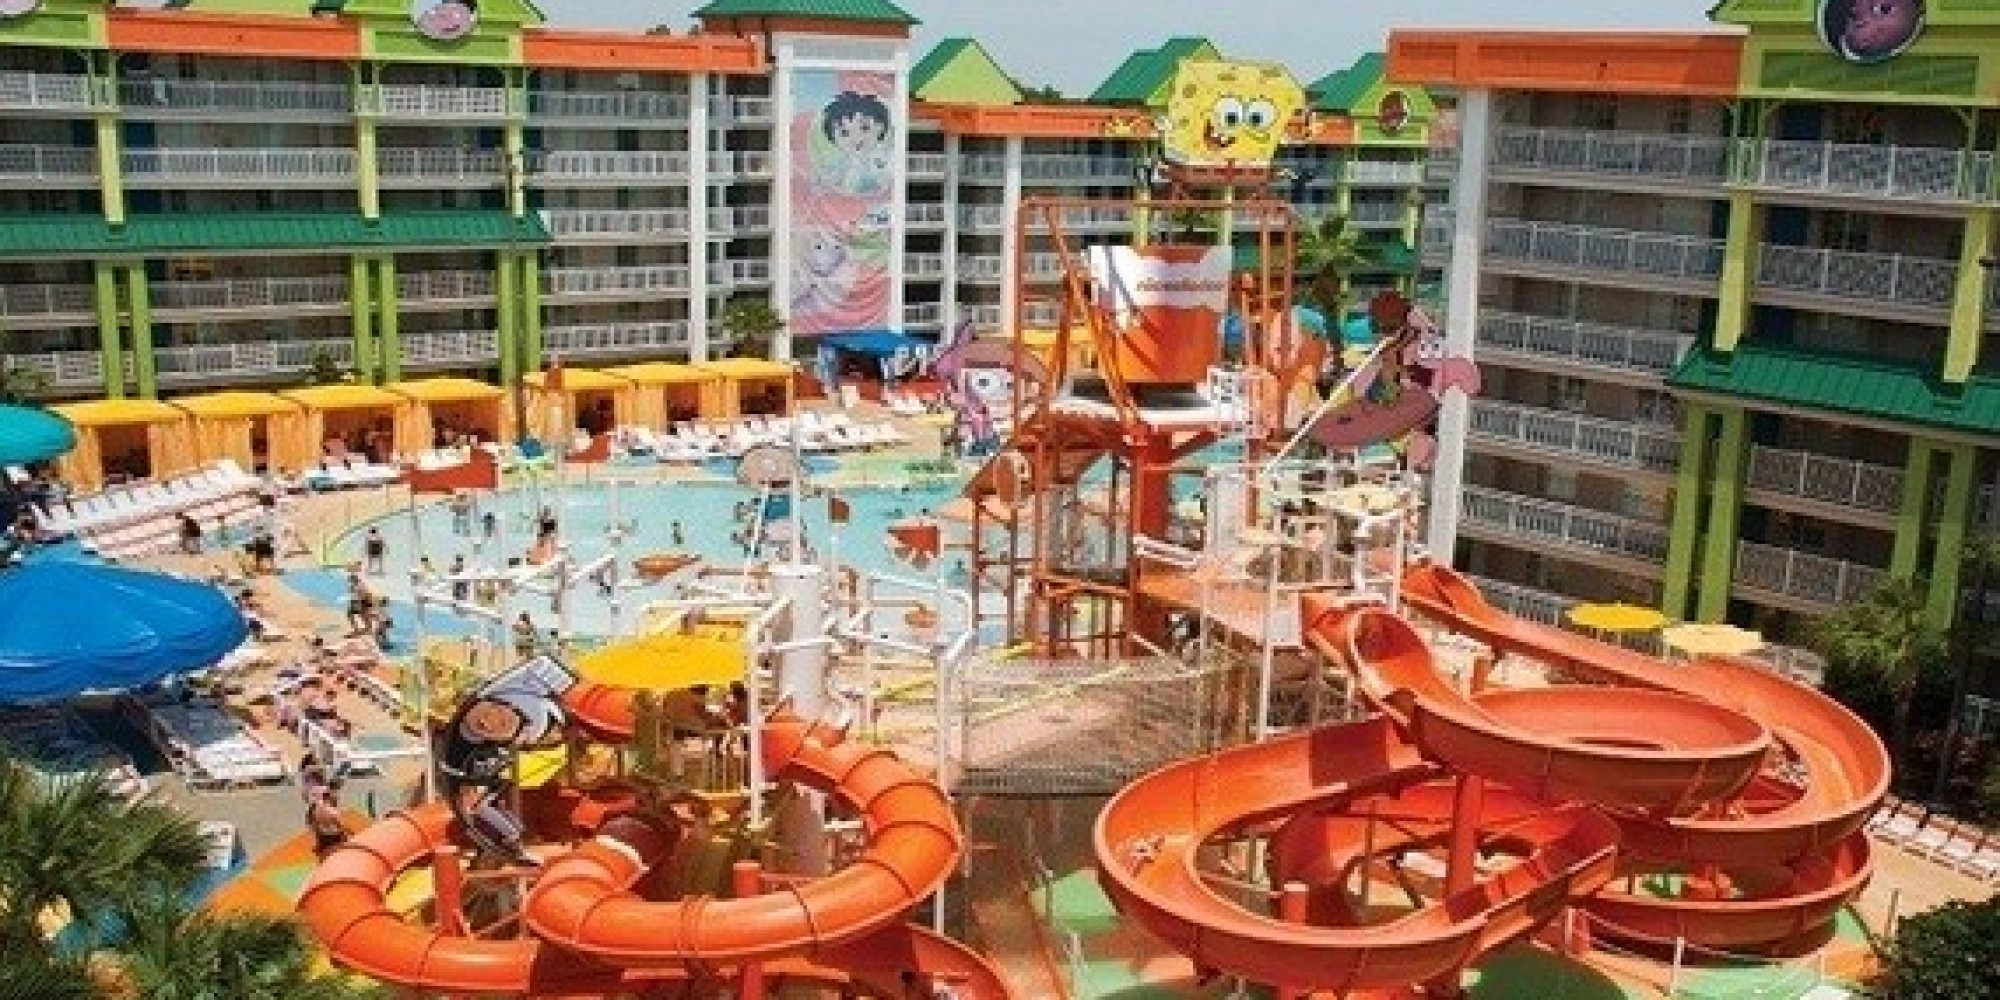 Orlando S Most Amazing Hotel Pools Huffpost